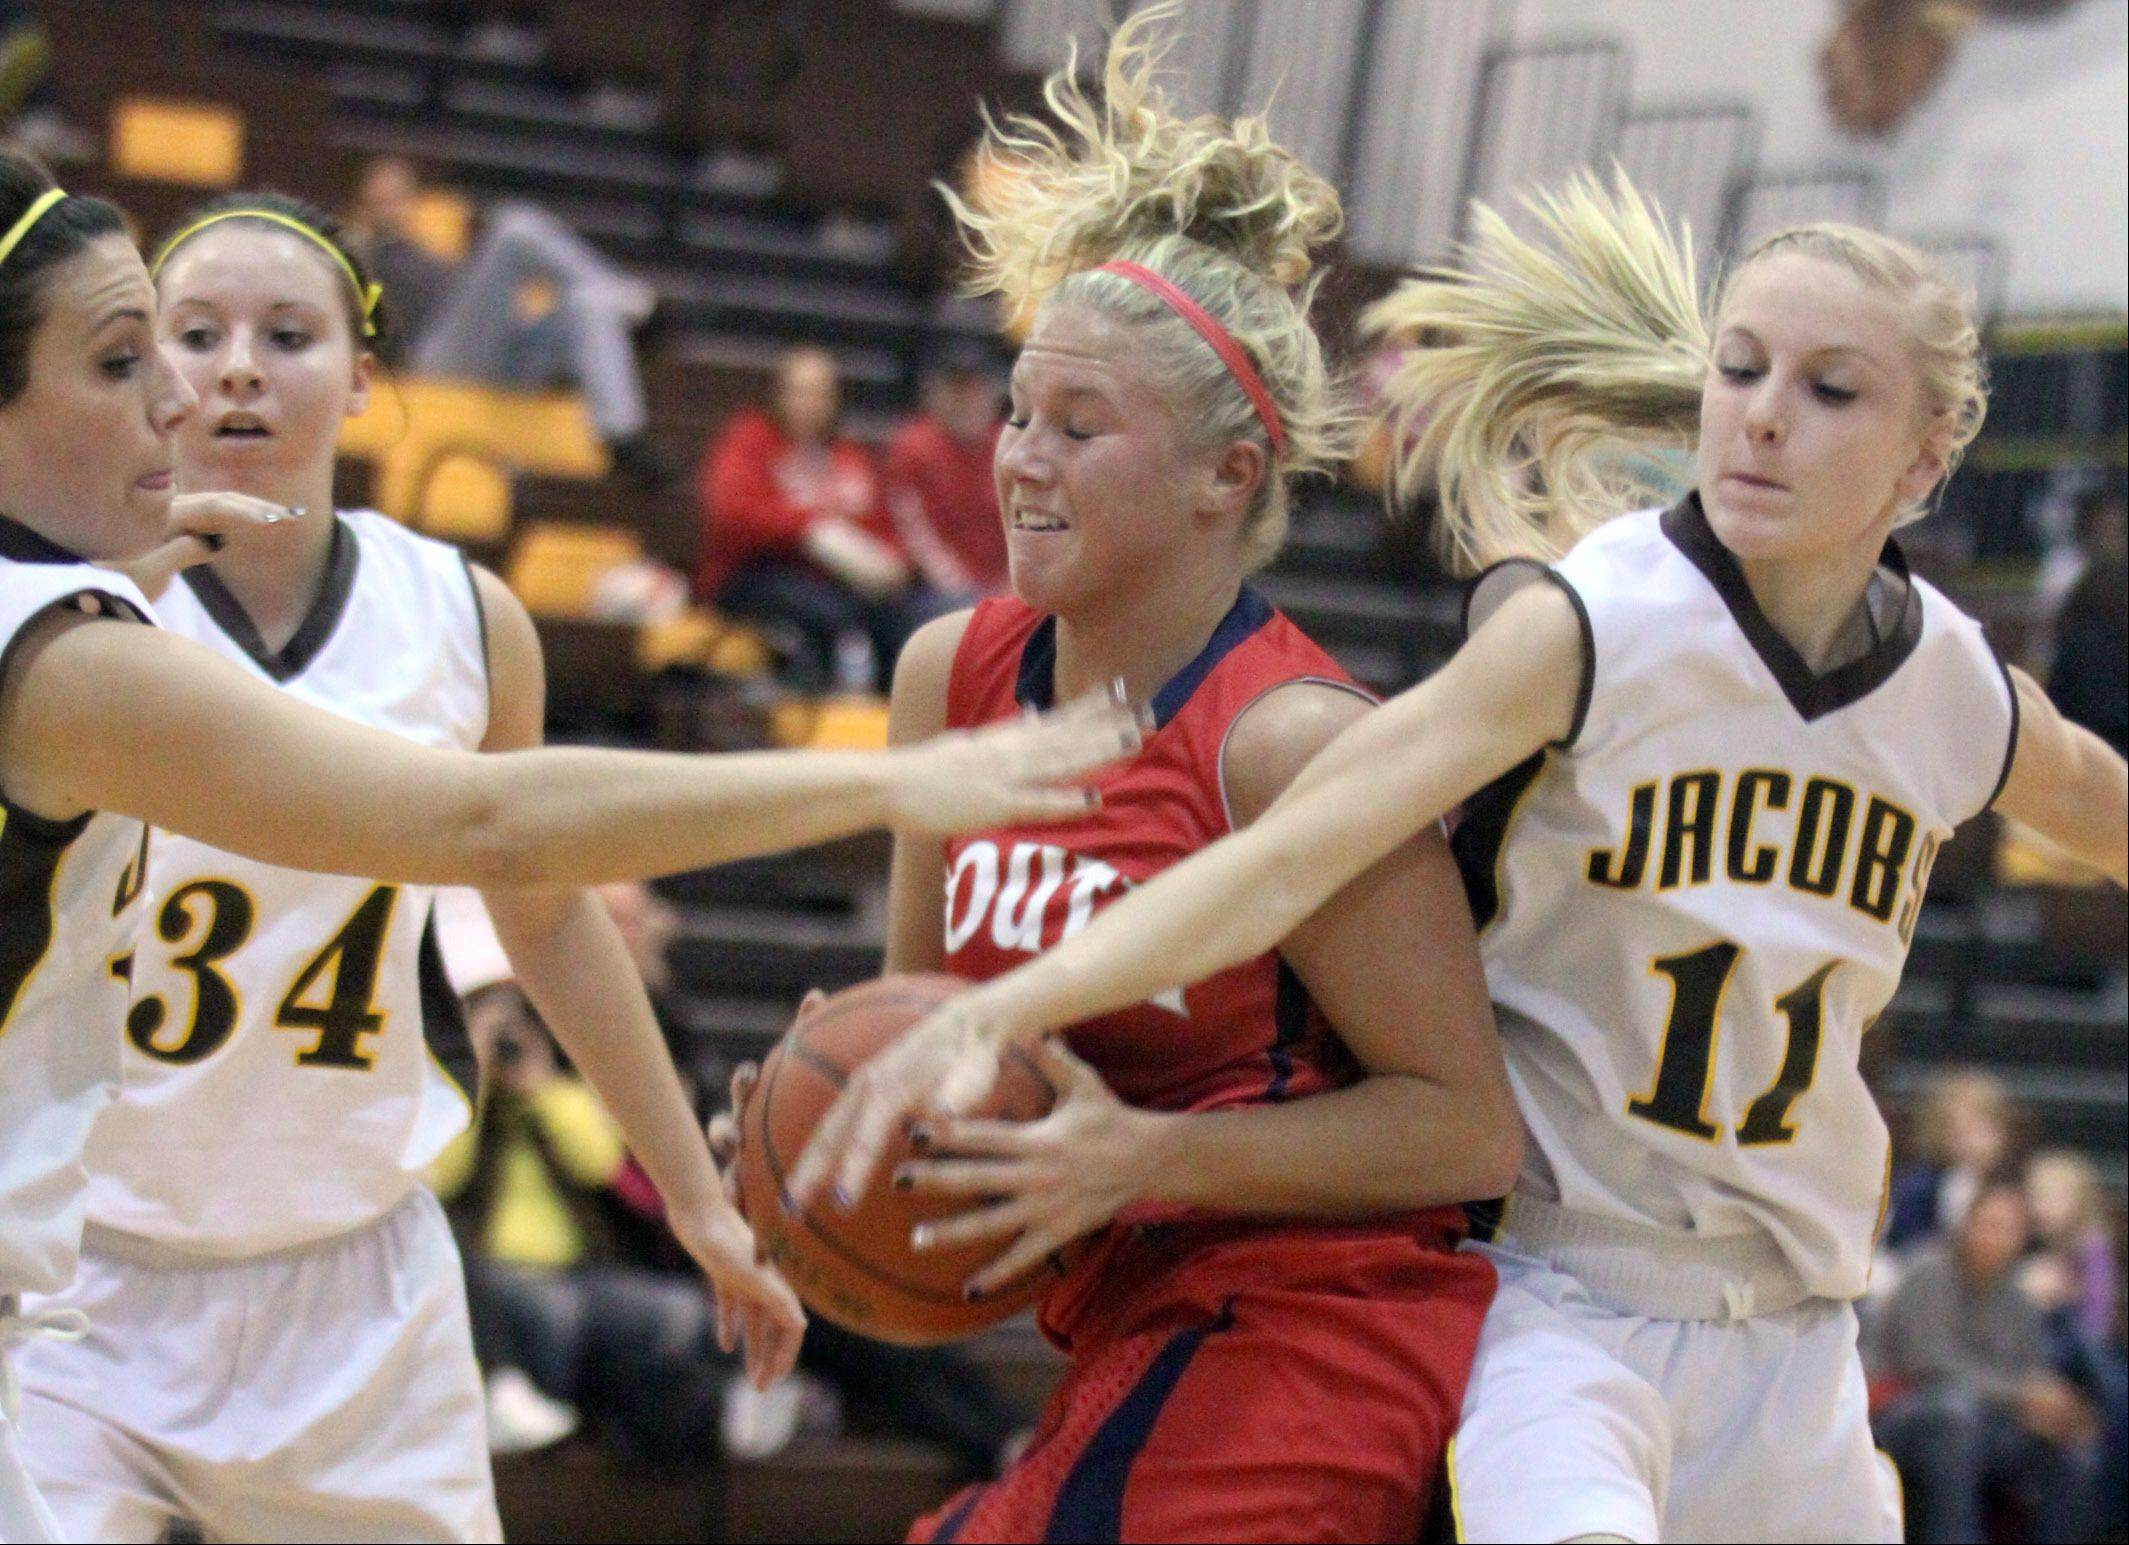 Jacobs' Payton Berg, left, and Lauren Van Vlierbergen, right try to stop the progress of South Elgin's Kara Rodriguez, center, during a varsity basketball game at Algonquin on Tuesday night.